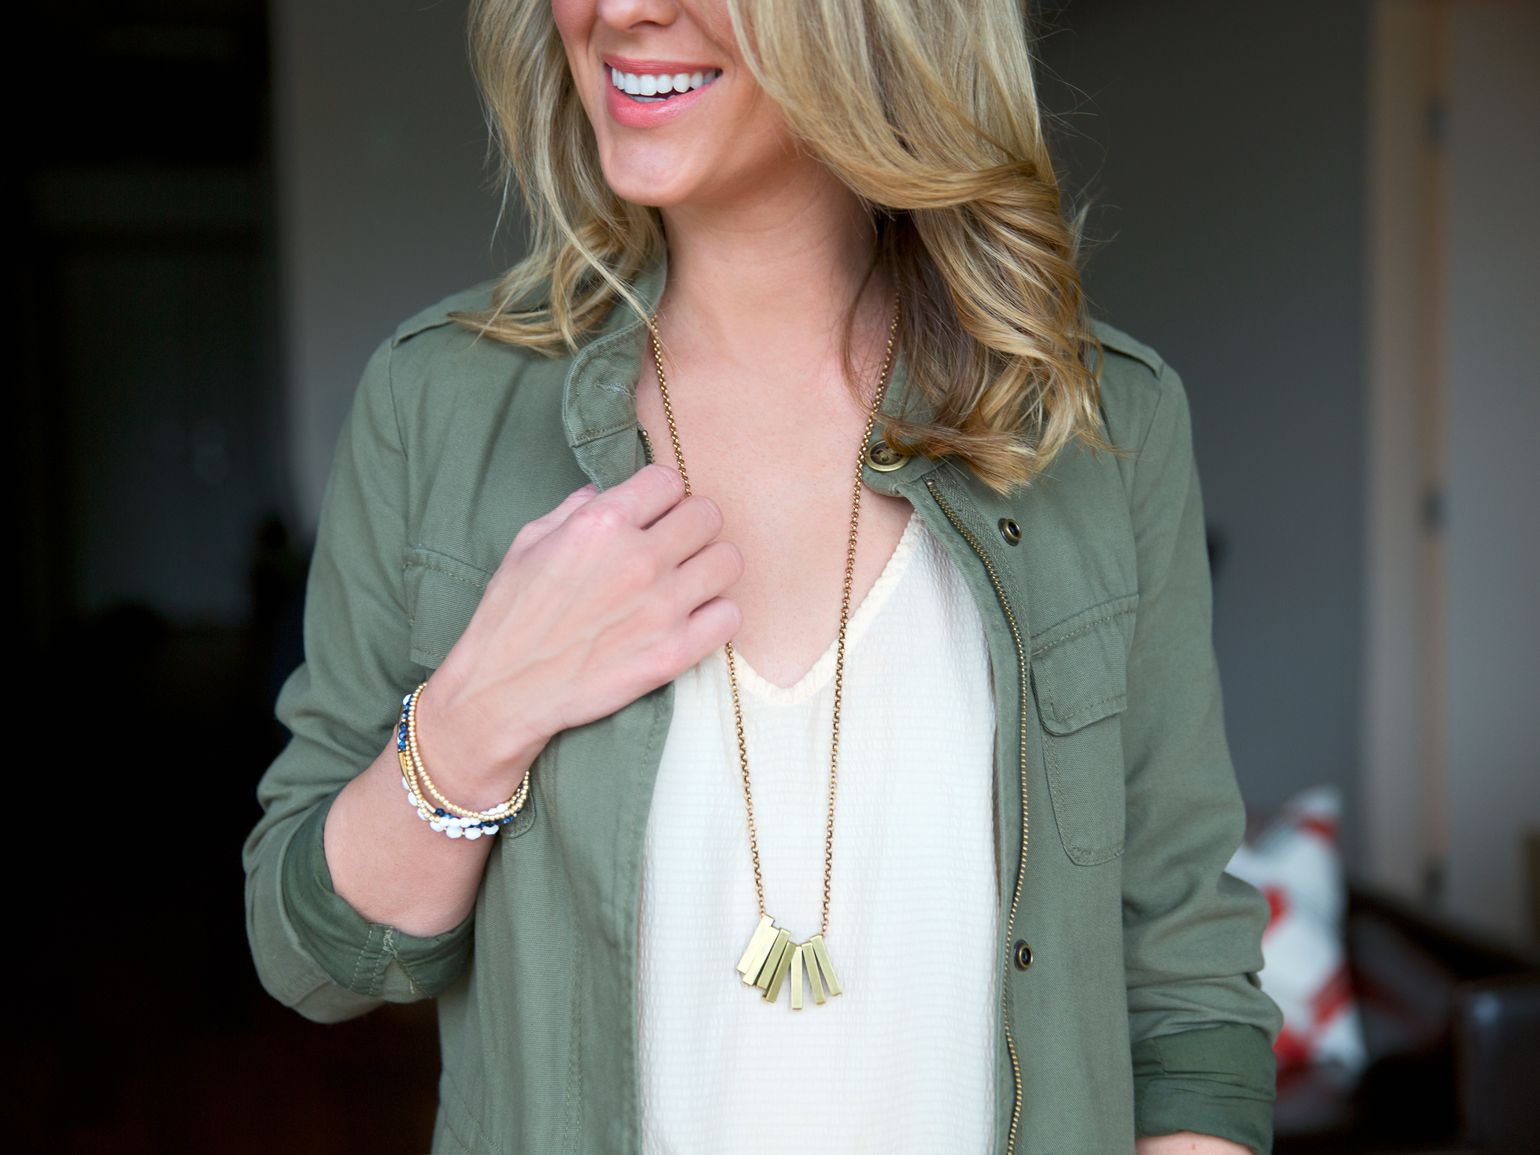 Diamond Necklace Types to make a Statement